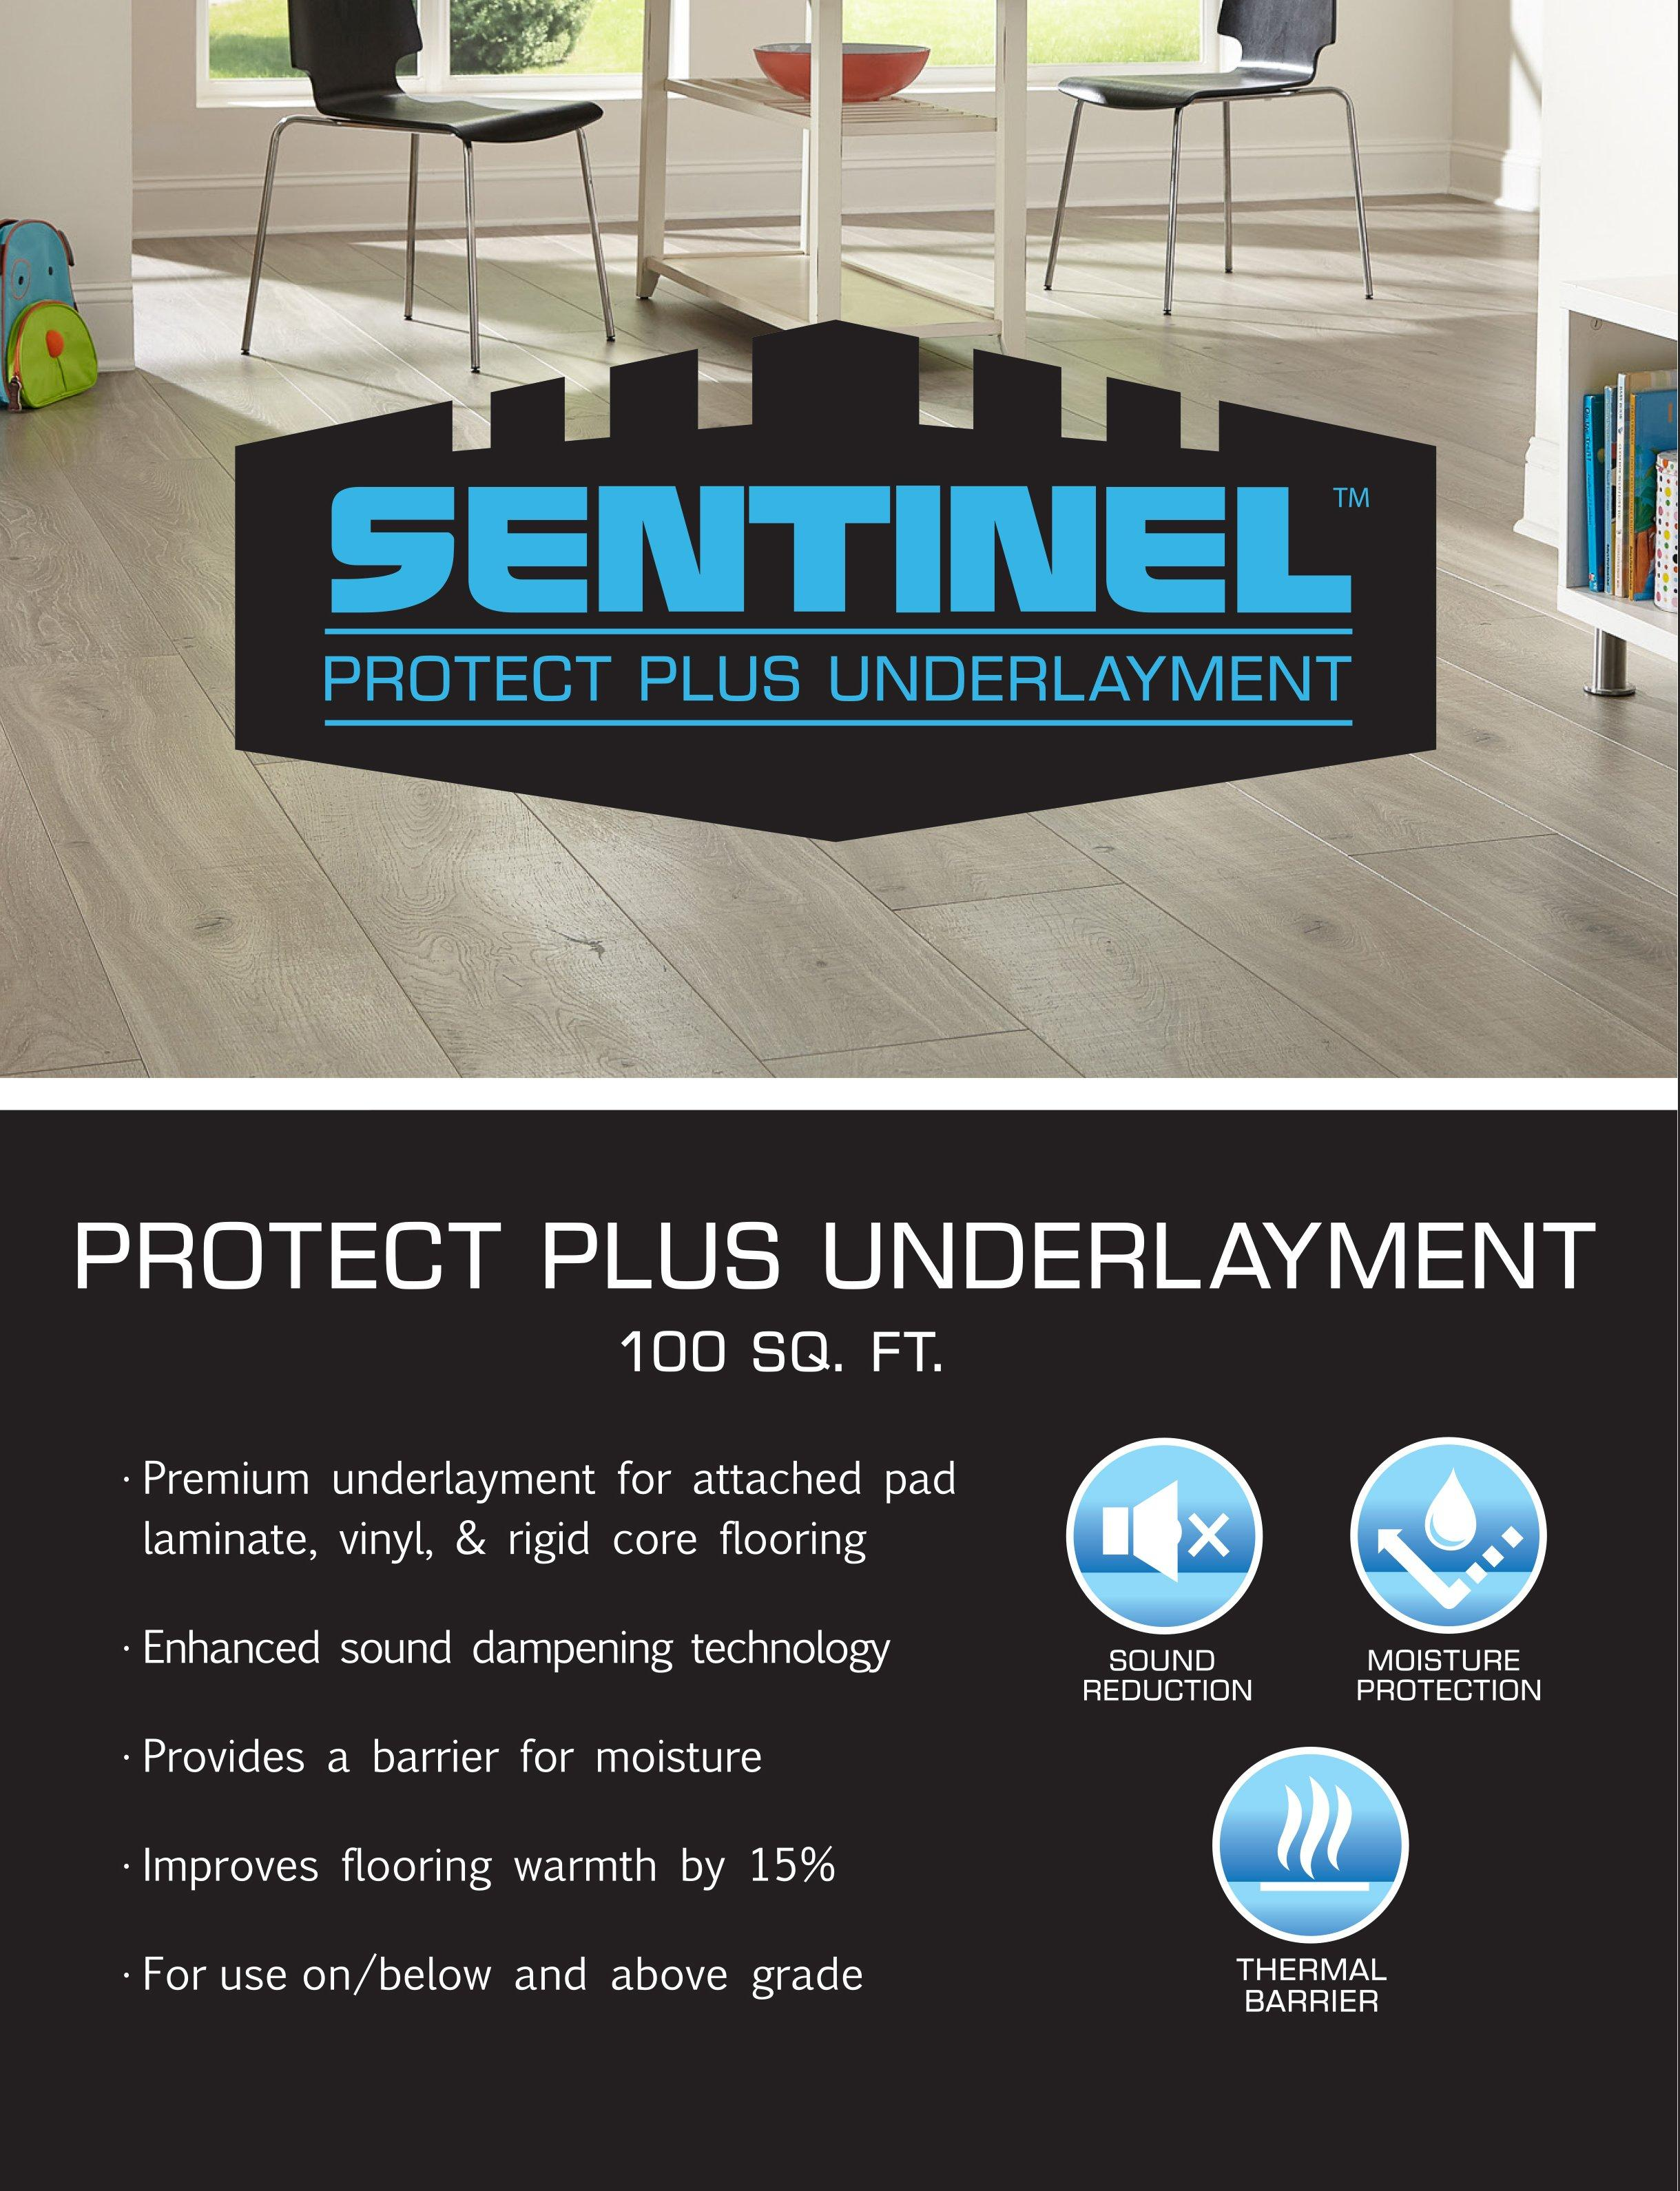 Sentinel Protect Plus Underlayment, Laminate Flooring With Moisture Barrier Attached